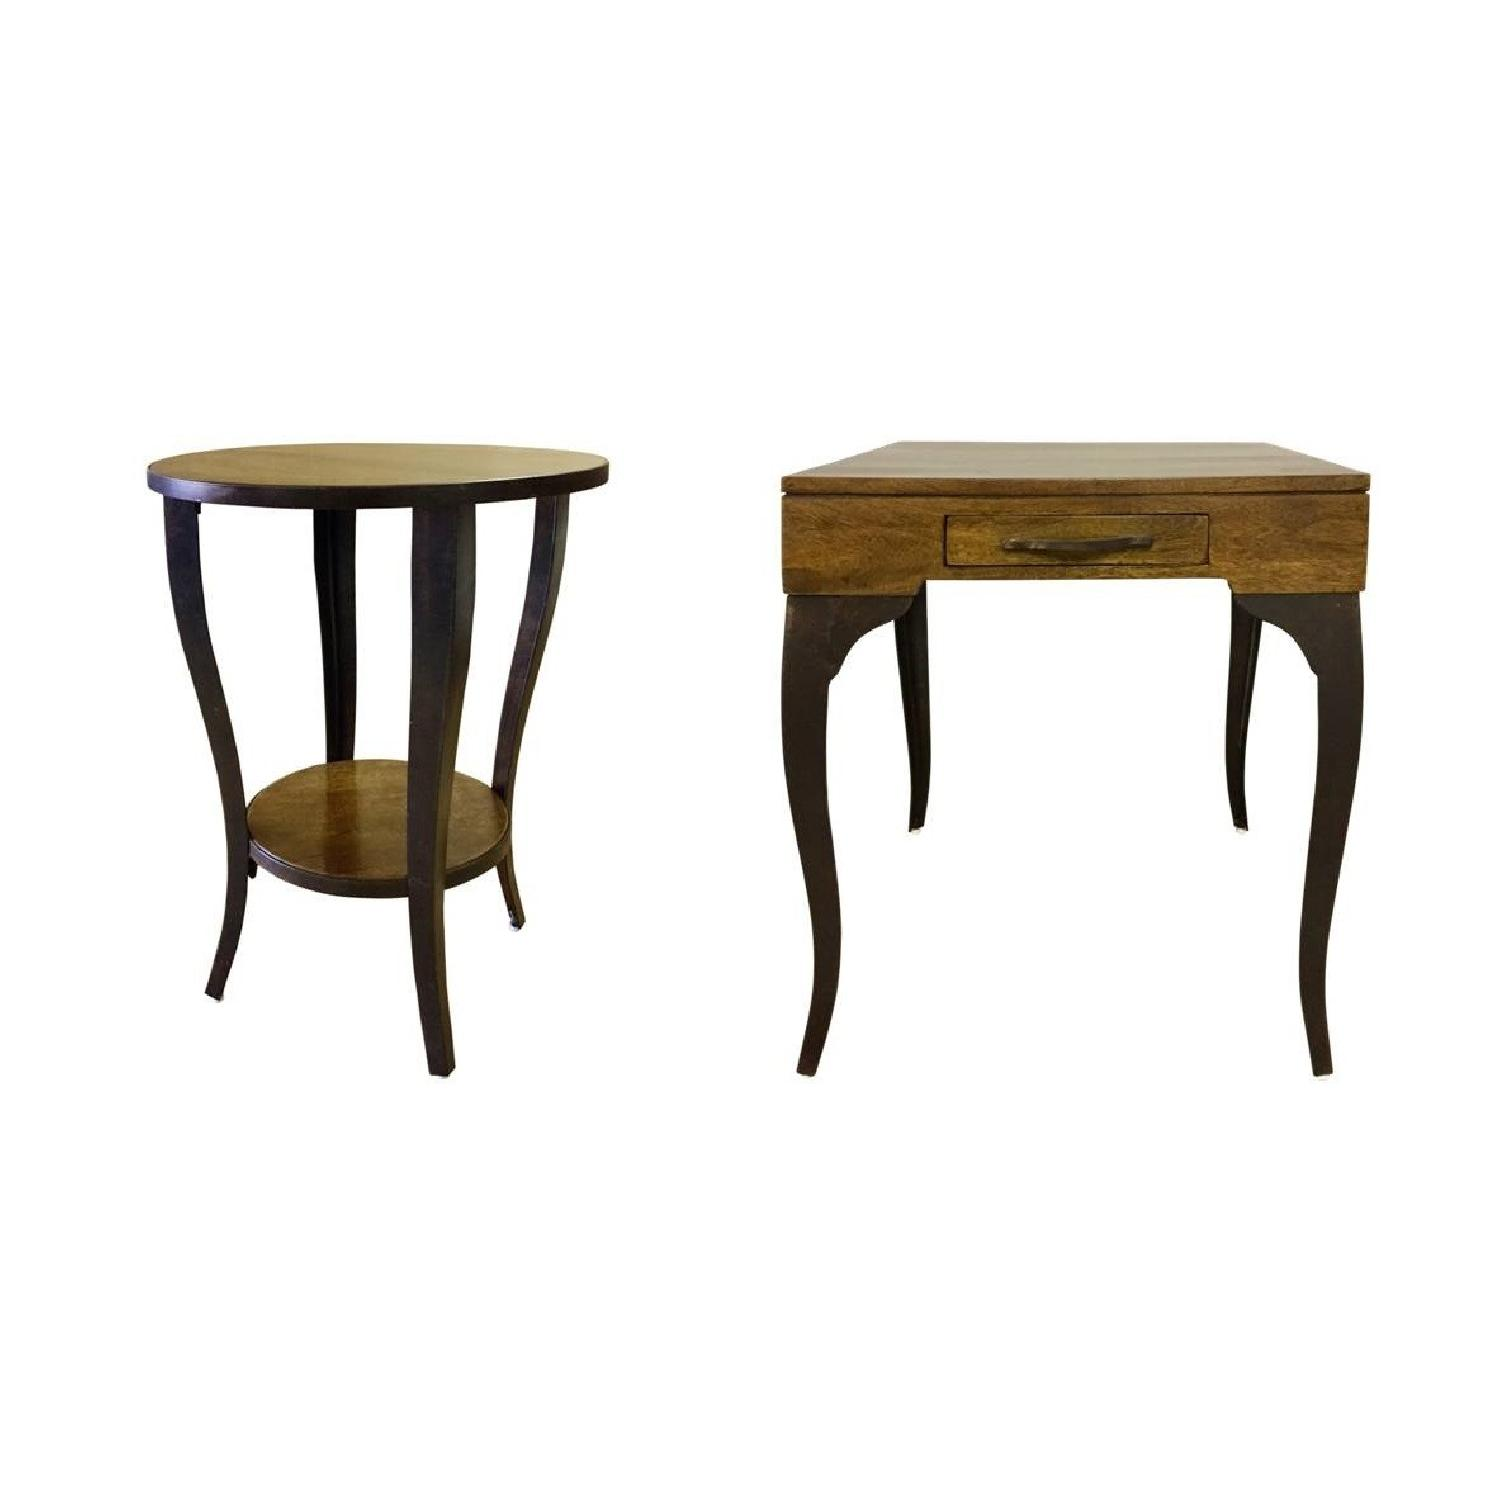 Designe Gallerie Melange Side/End Tables